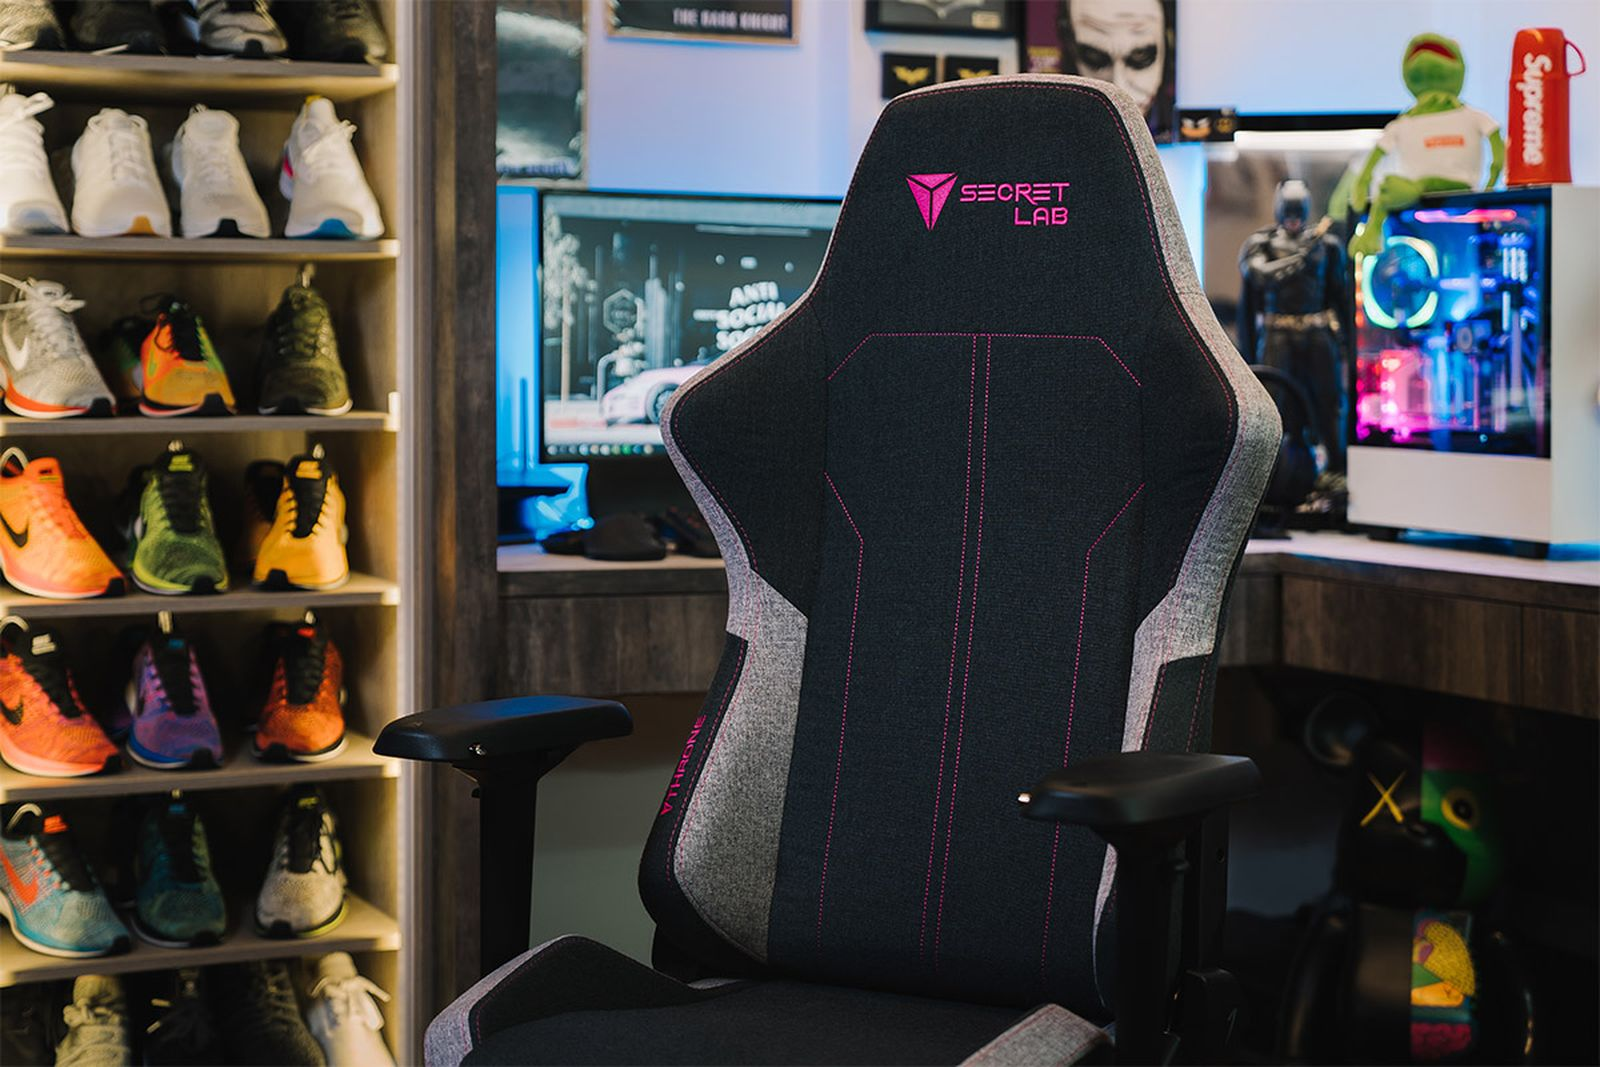 secretlab softweave chairs